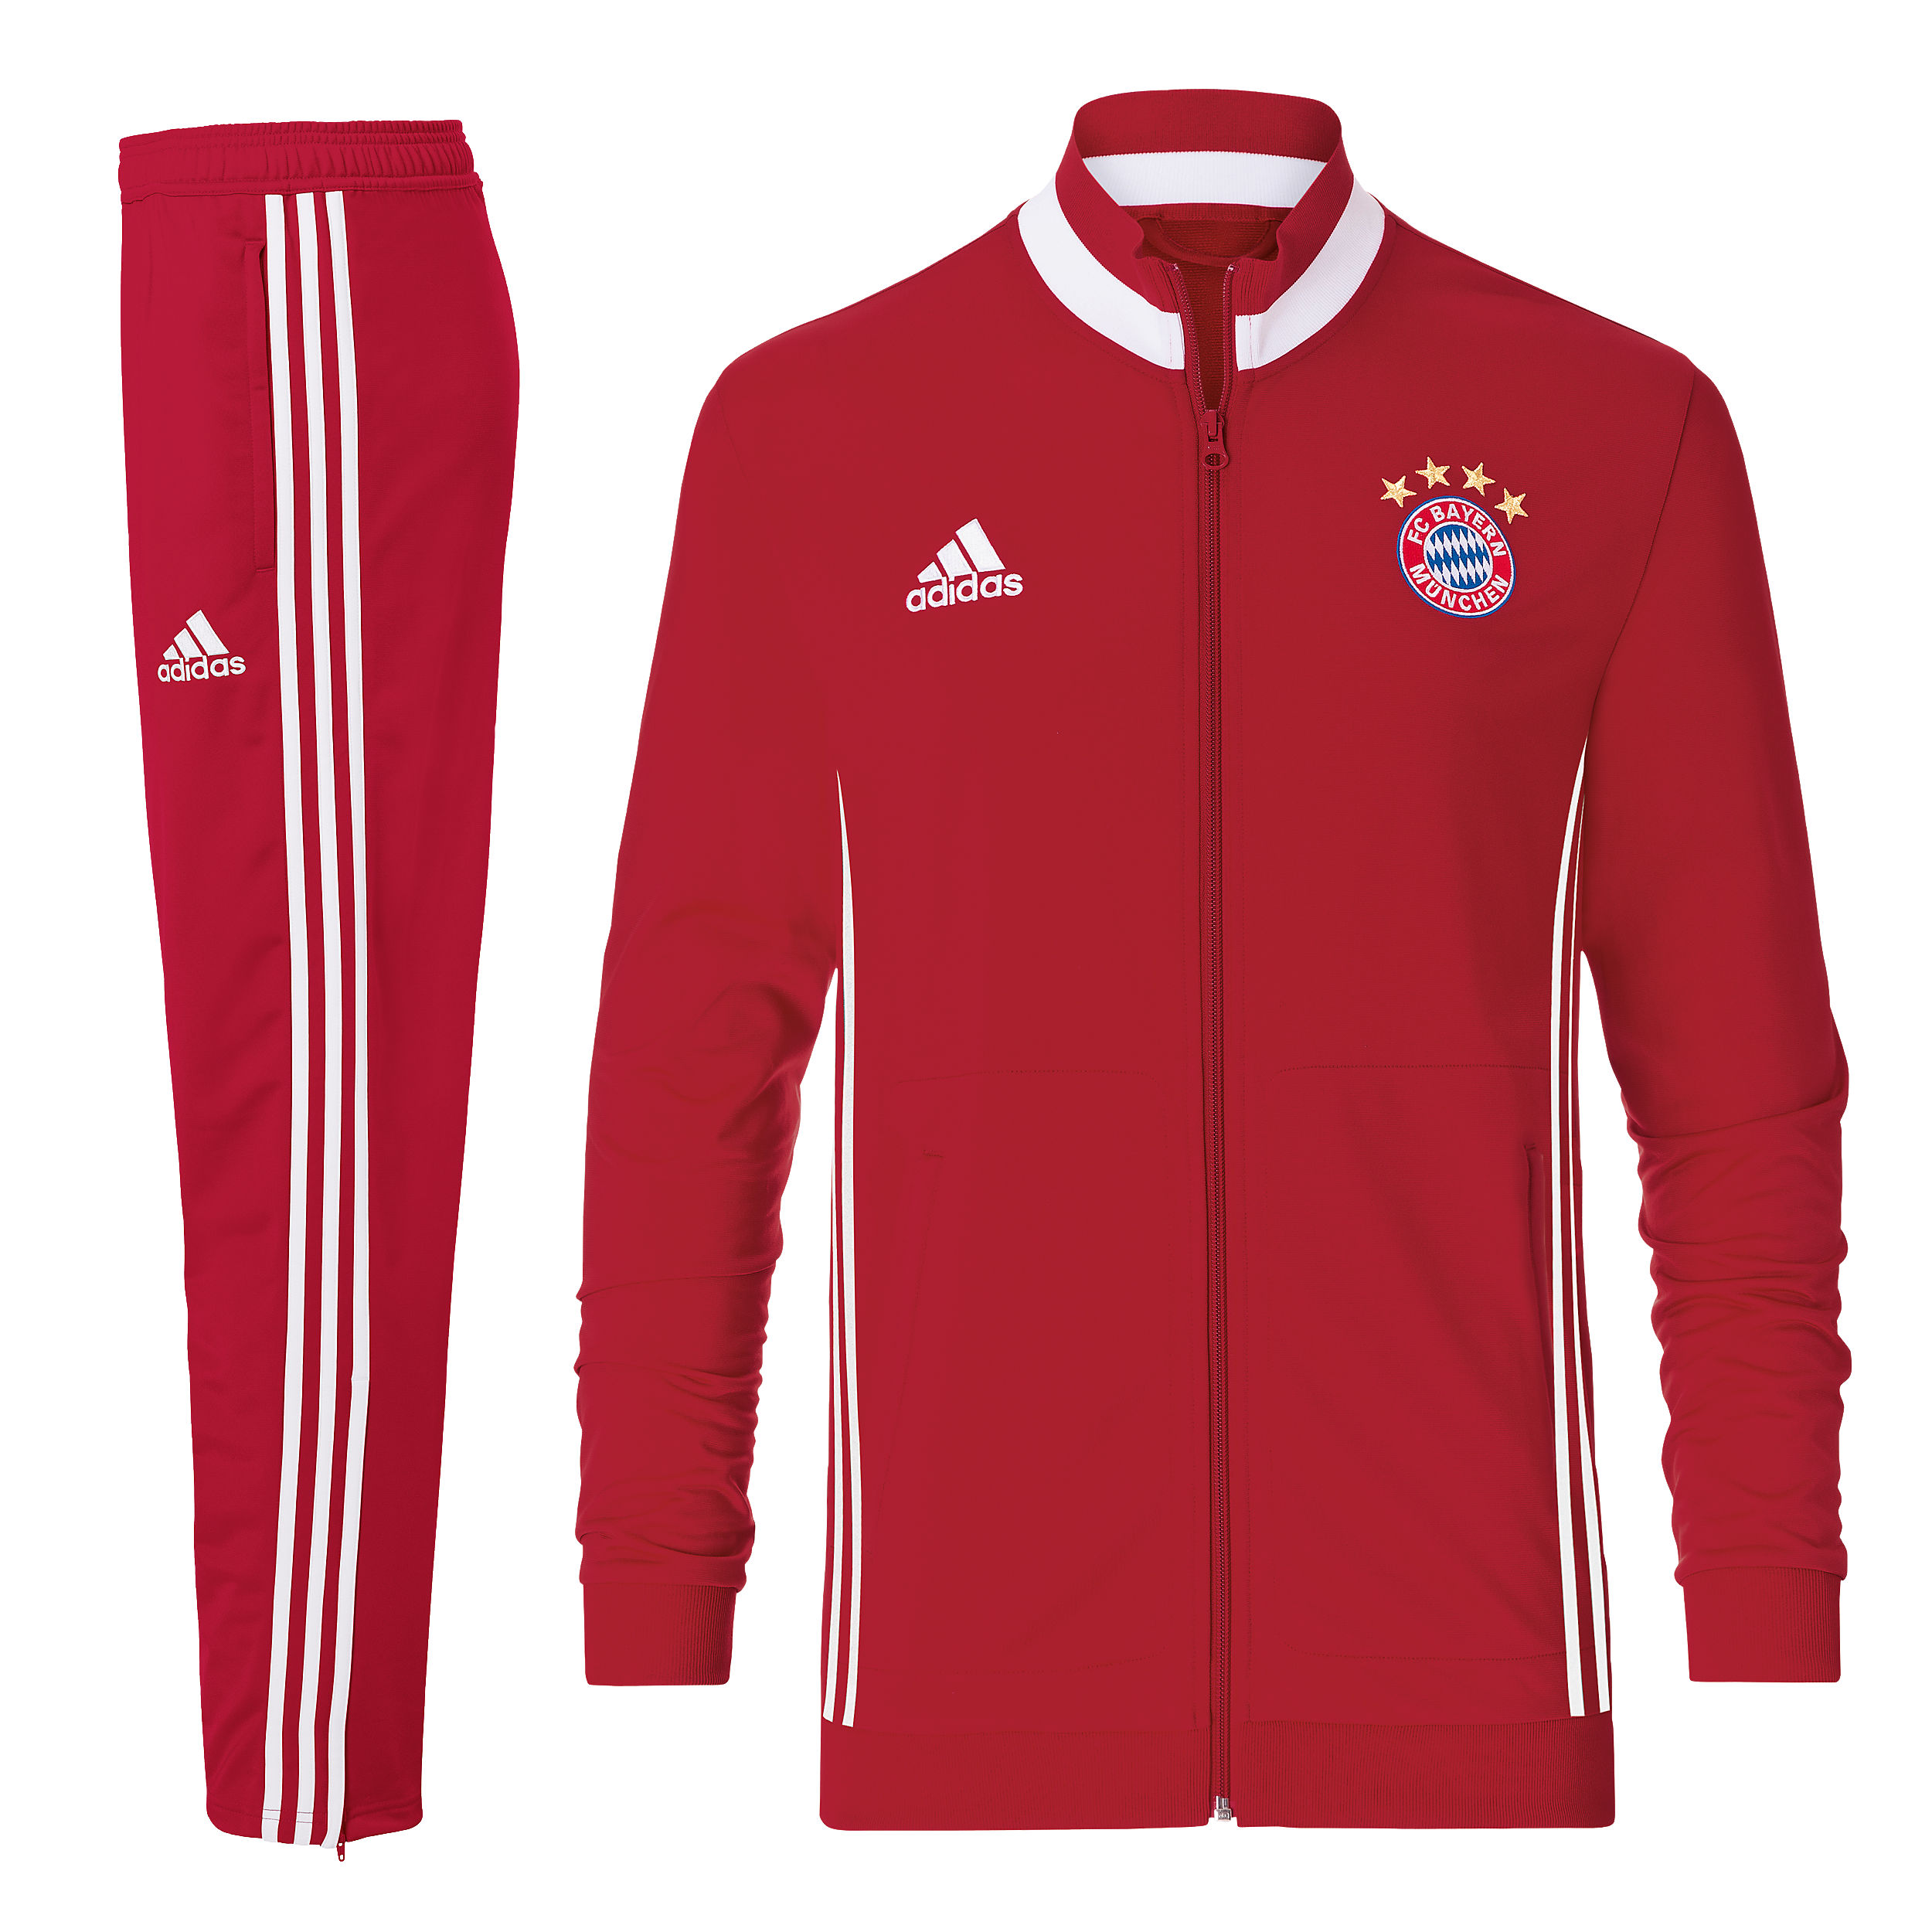 buy cheap online adidas shirt red. Black Bedroom Furniture Sets. Home Design Ideas